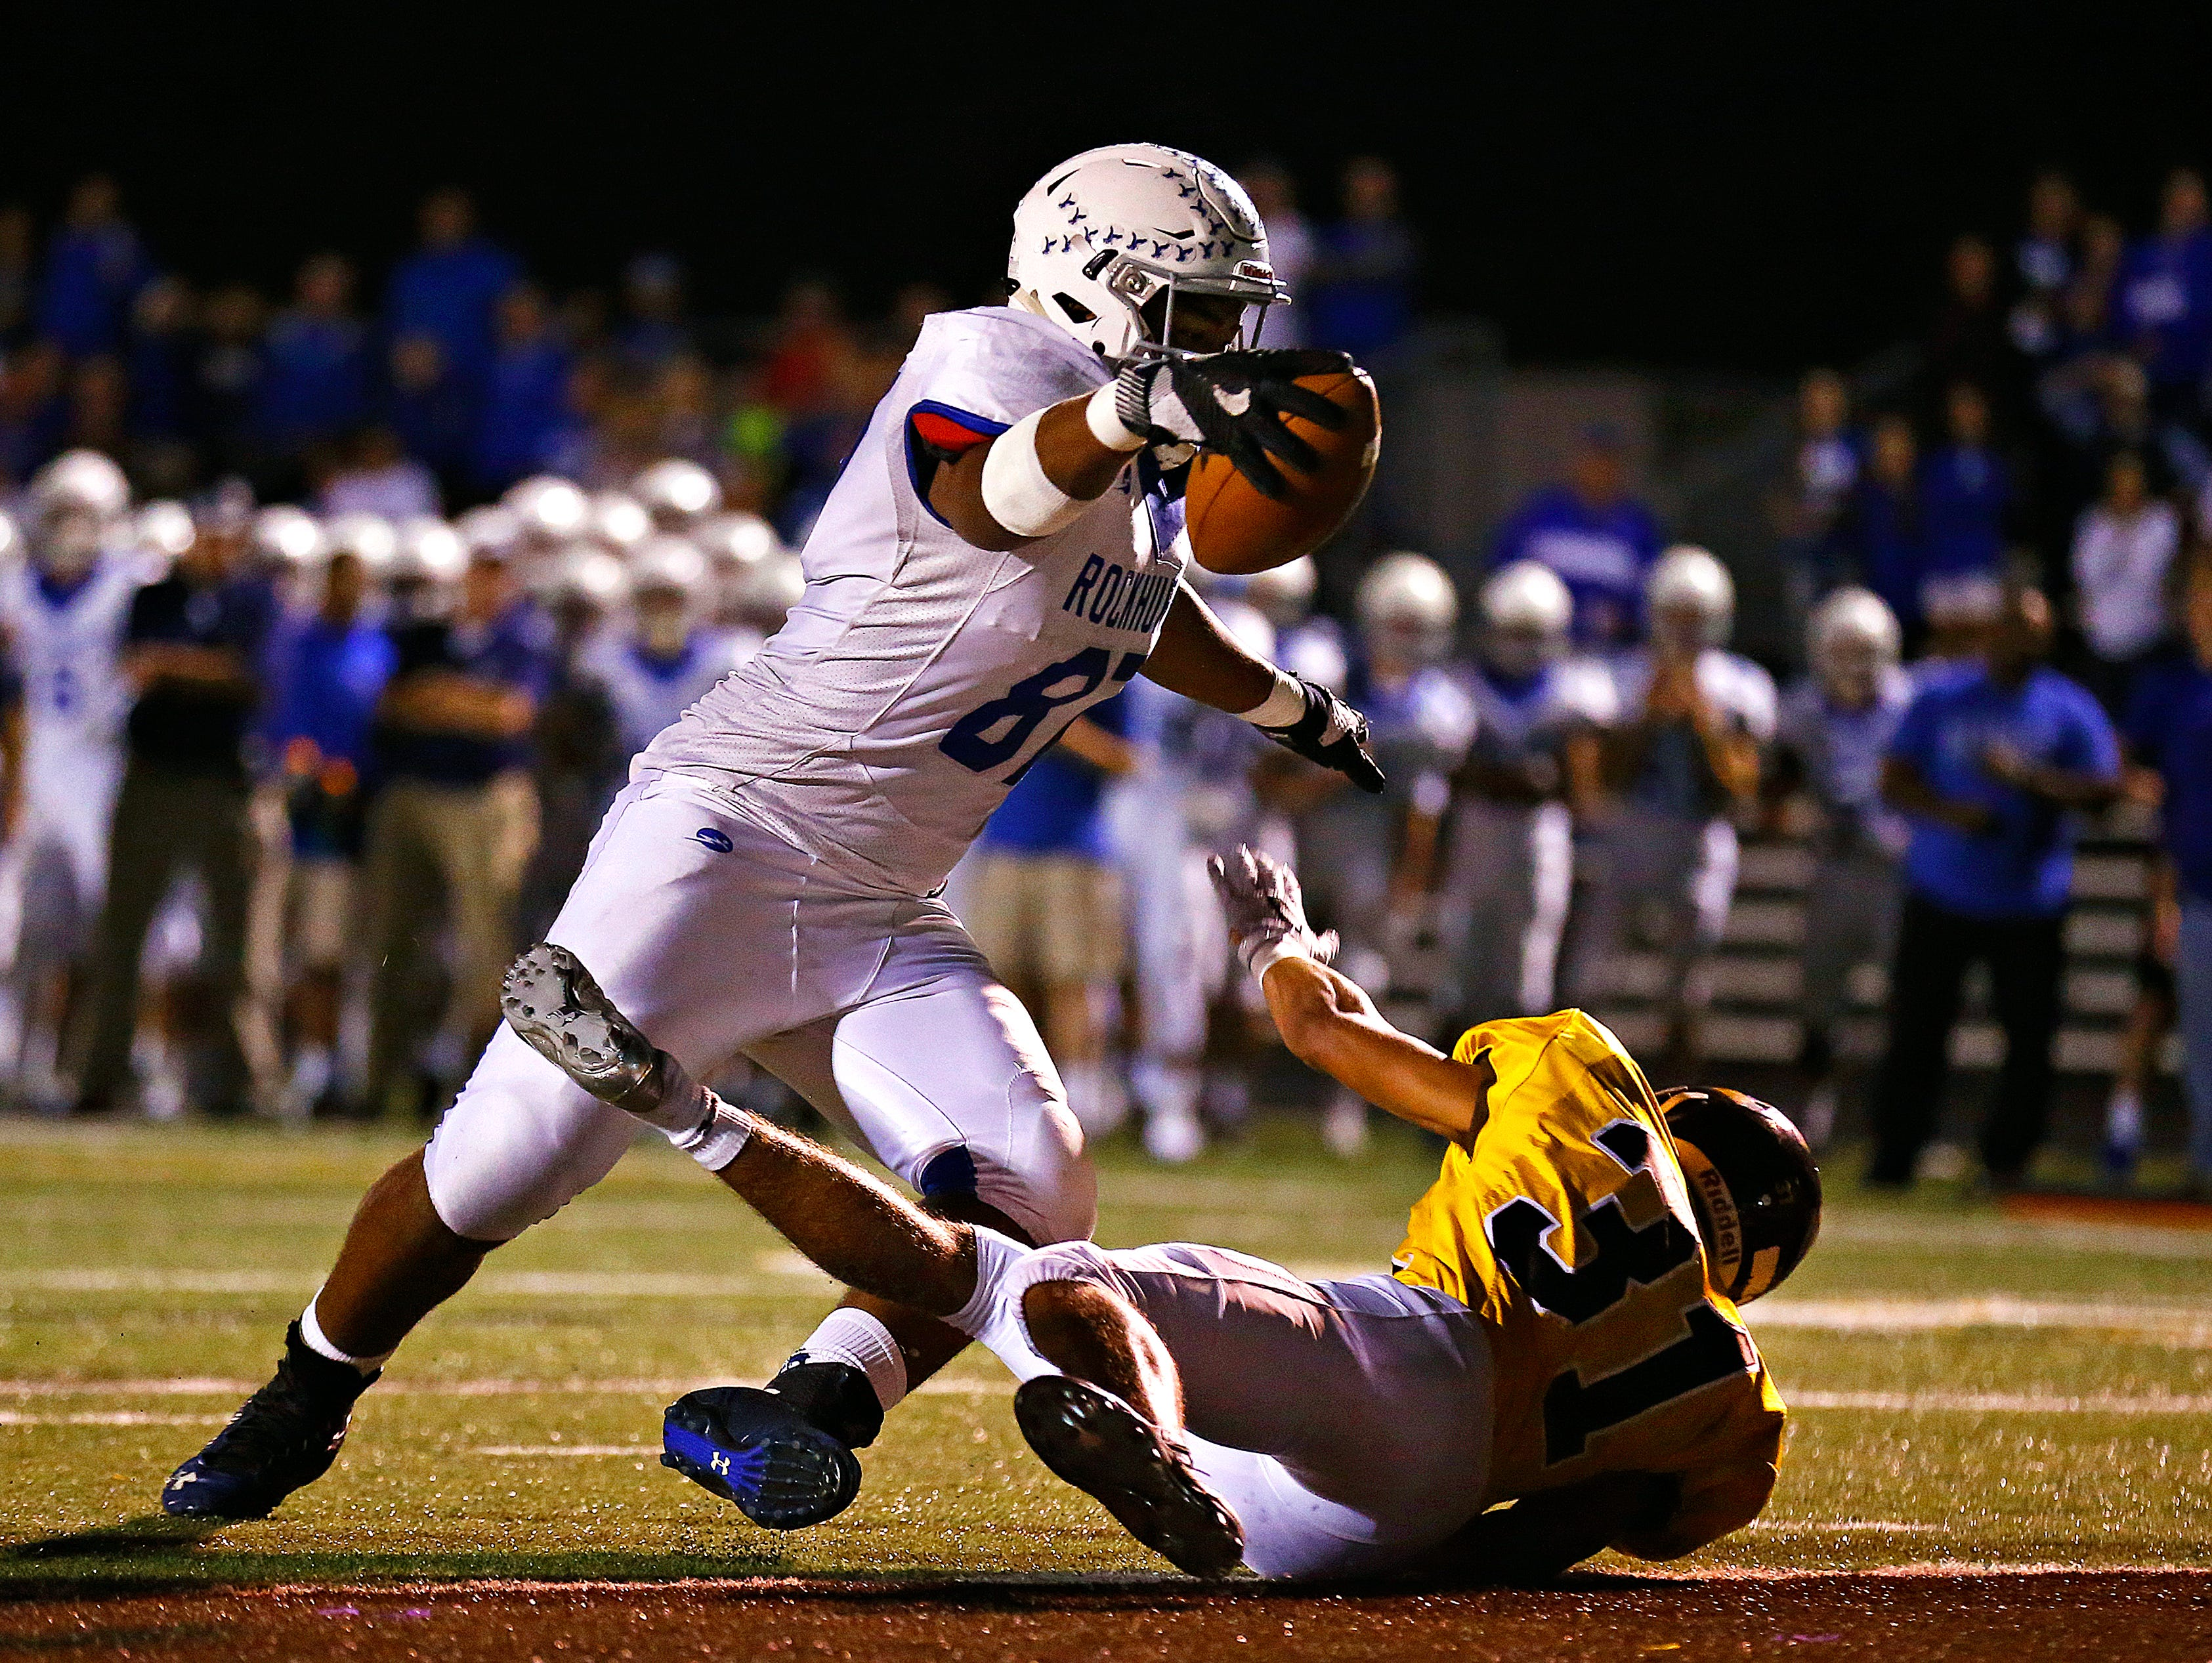 Rockhurst High School tight end Jacob Sykes (87) stretches out over Chiefs defensive back Jabin Johnson (31) to score a touchdown during second quarter action of the Class 6 playoff game between Rockhurst High School and Kickapoo High School played at Pottenger Stadium in Springfield, Mo. on Oct. 28, 2016.